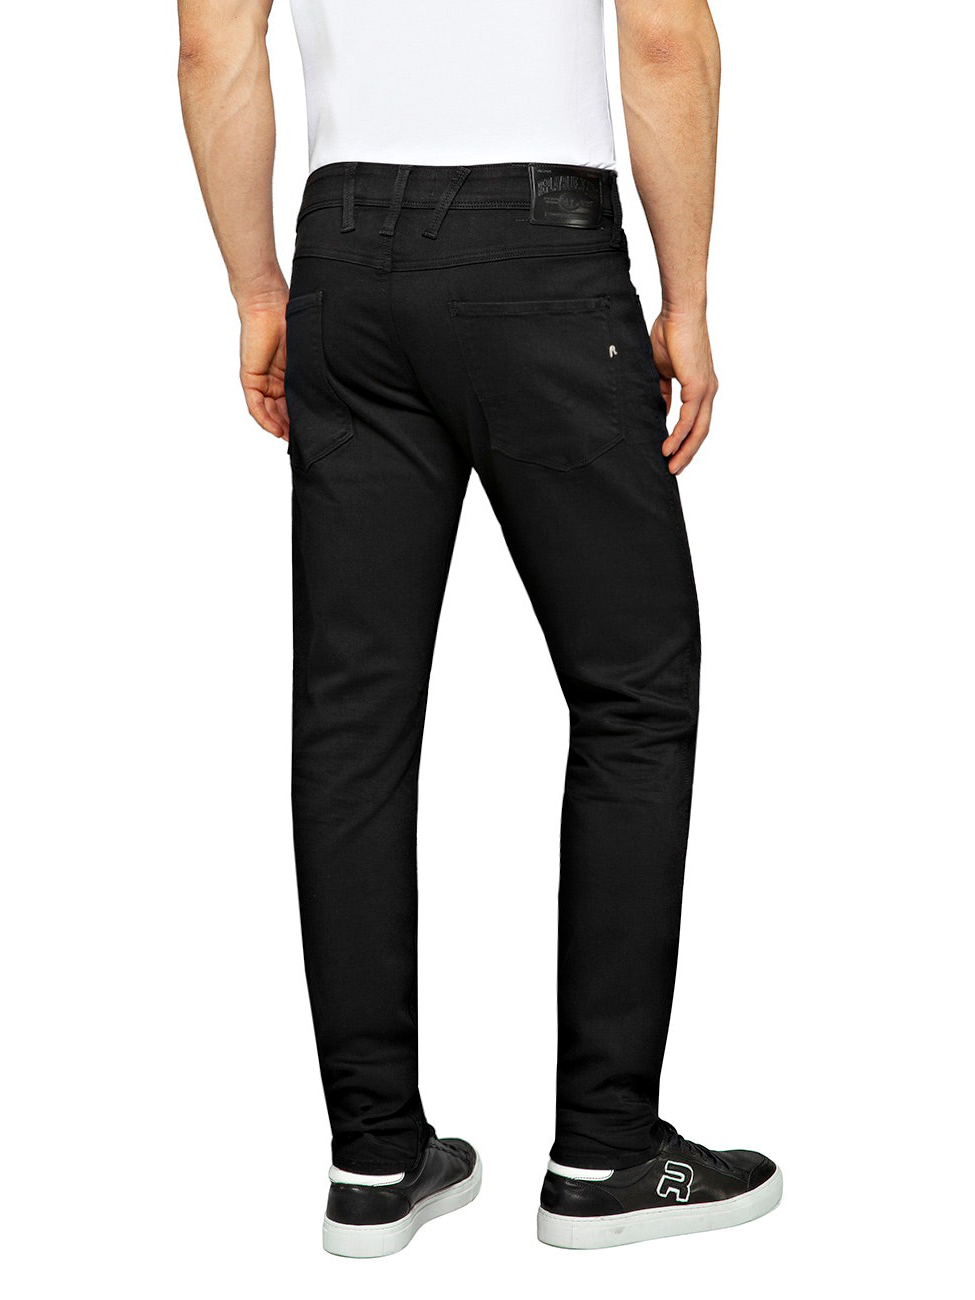 replay-herren-jeans-anbass-slim-fit-schwarz-black